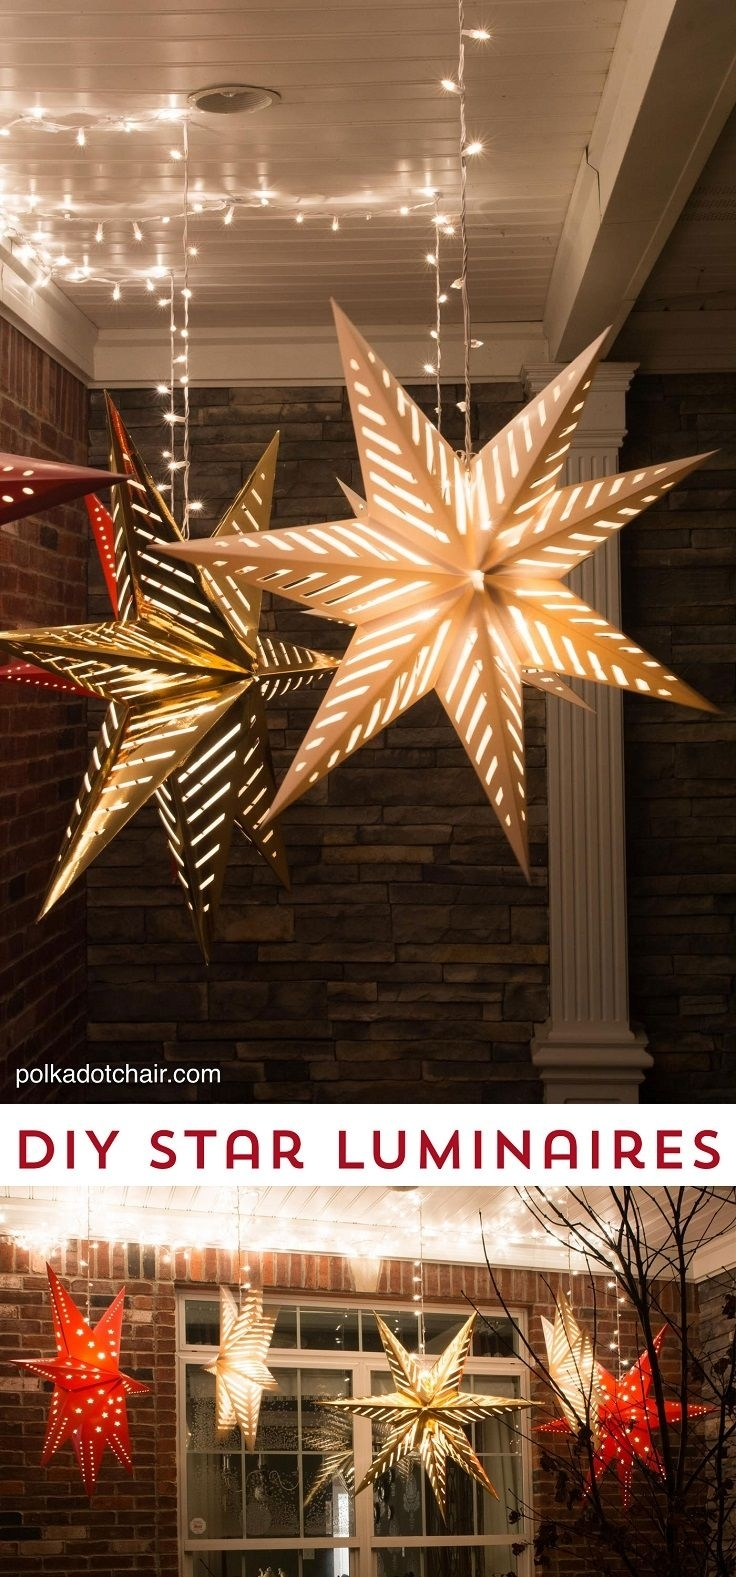 86 Best Christmas Outdoor Decor ☃ Images On Pinterest | Christmas Pertaining To Outdoor Lanterns For Christmas (Gallery 9 of 20)